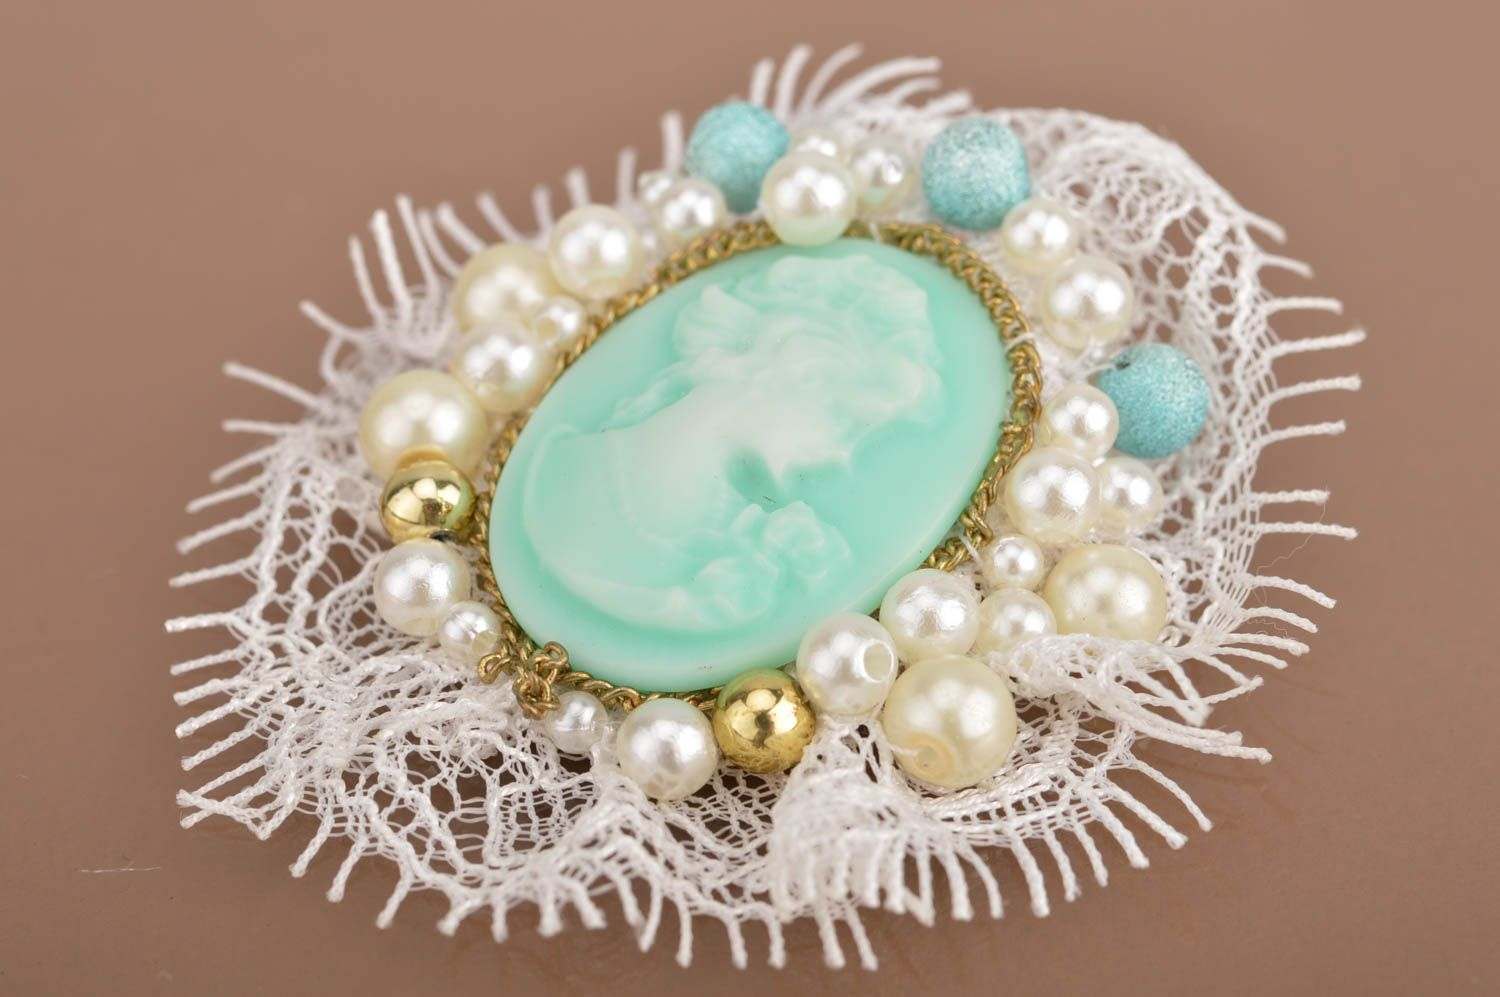 Handmade mint-colored cameo brooch with white lace accessory for women photo 2